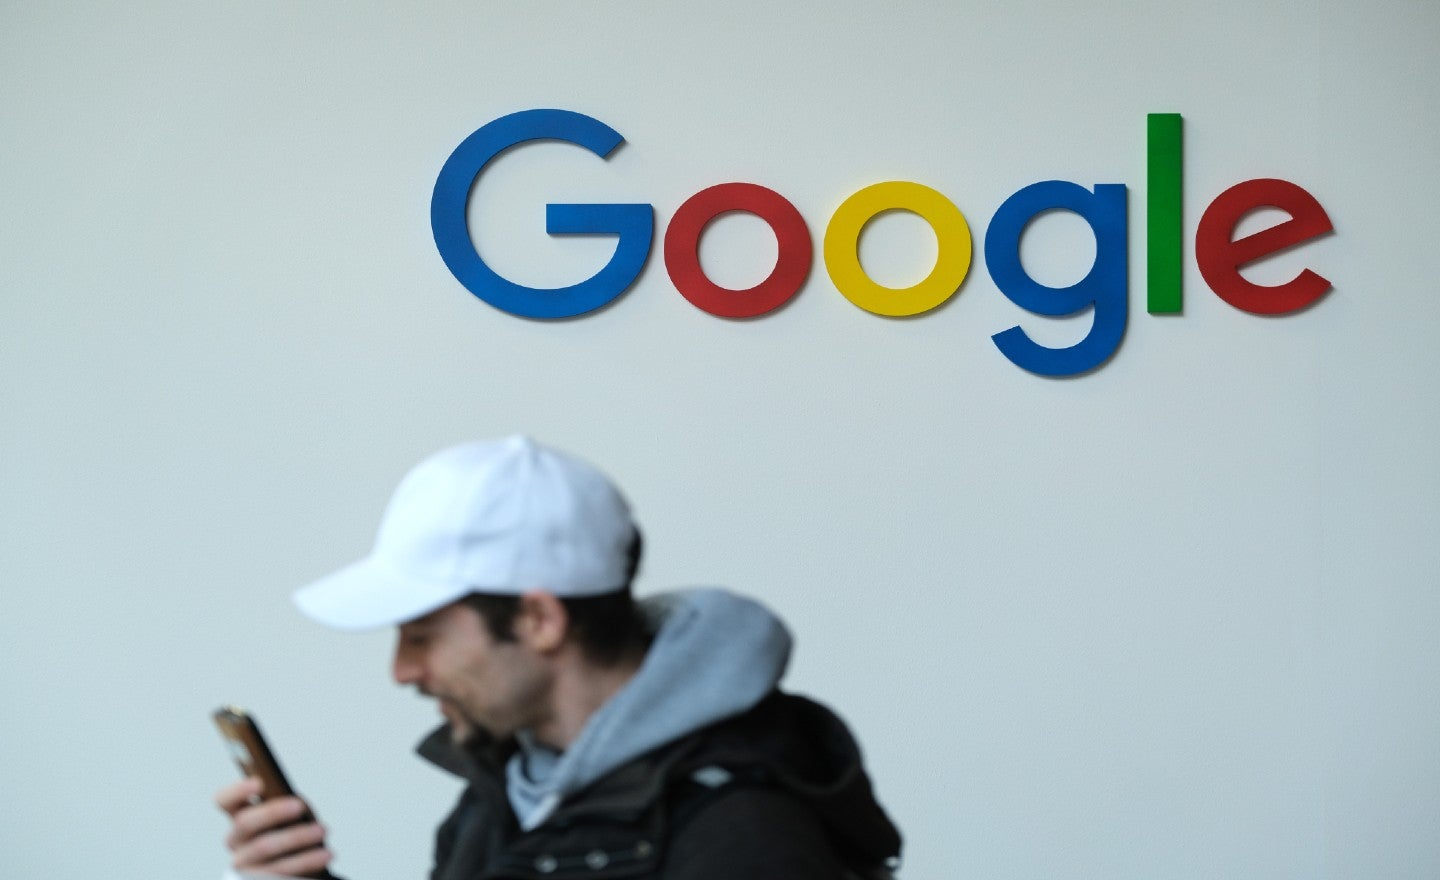 Google will fund 100,000 career certification scholarships to help workers find jobs amid pandemic